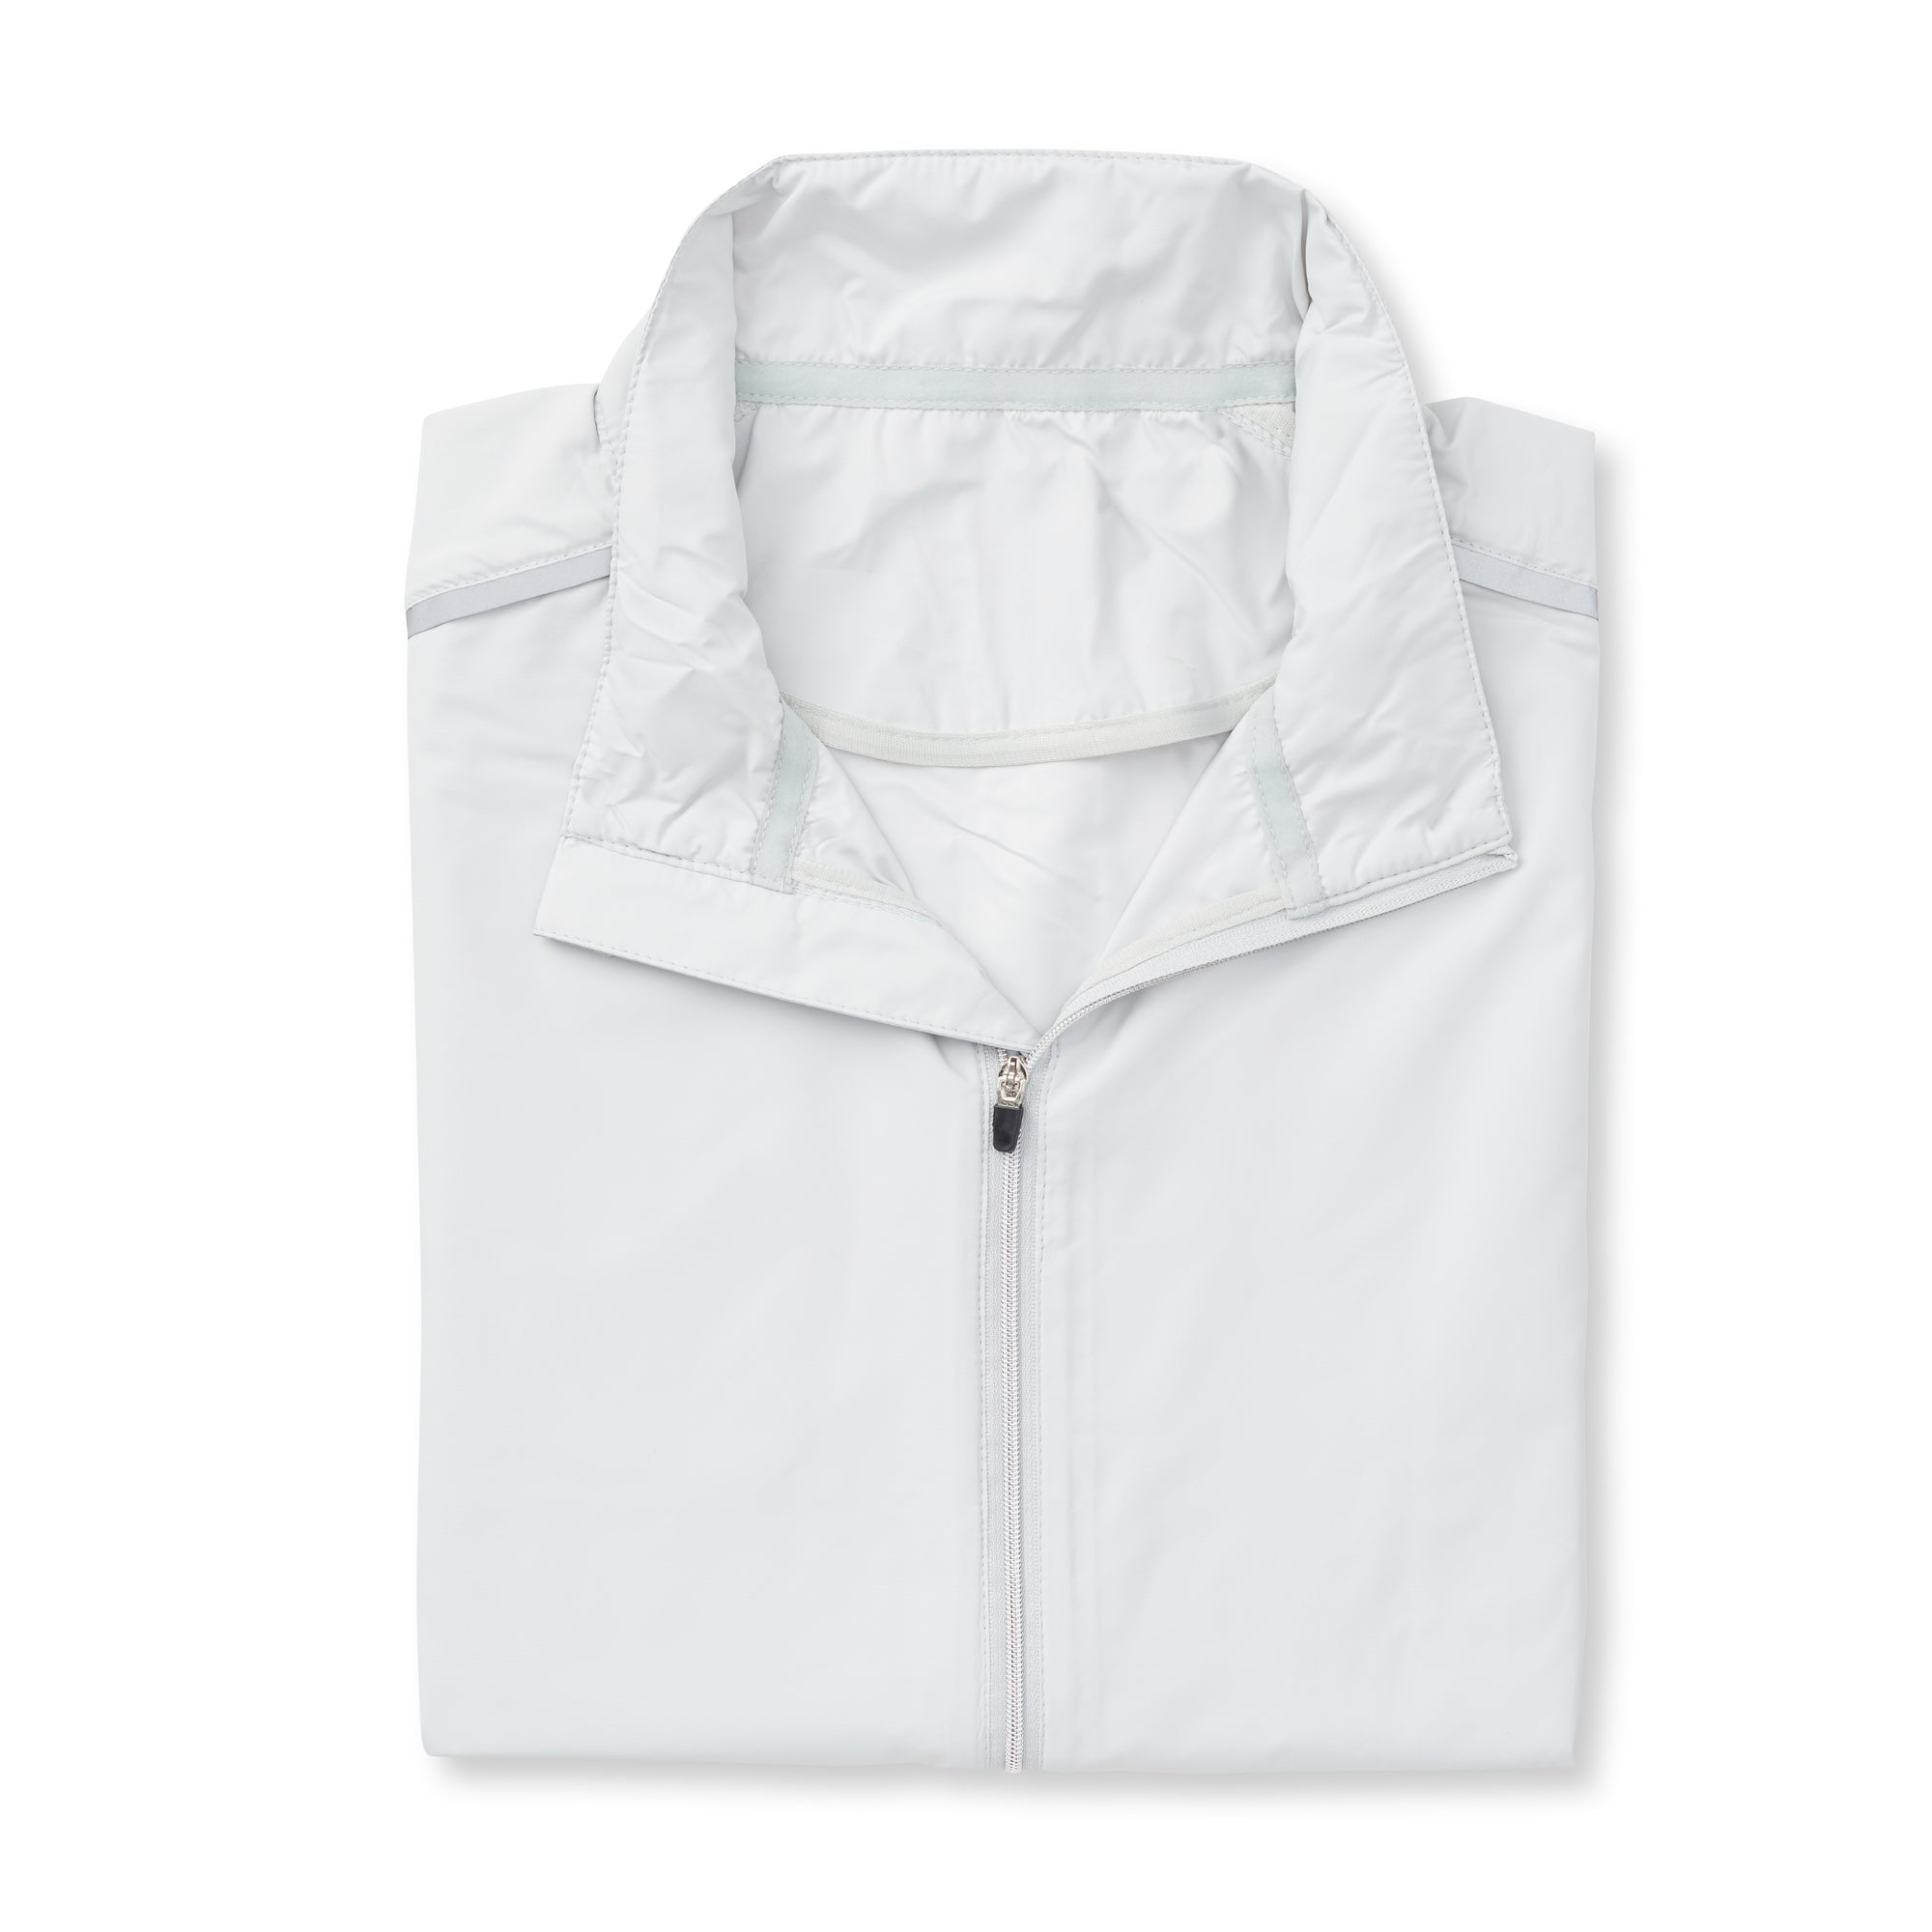 THE AVIATOR FULL ZIP TEC WINDWEAR VEST - Cloud IS64905VES